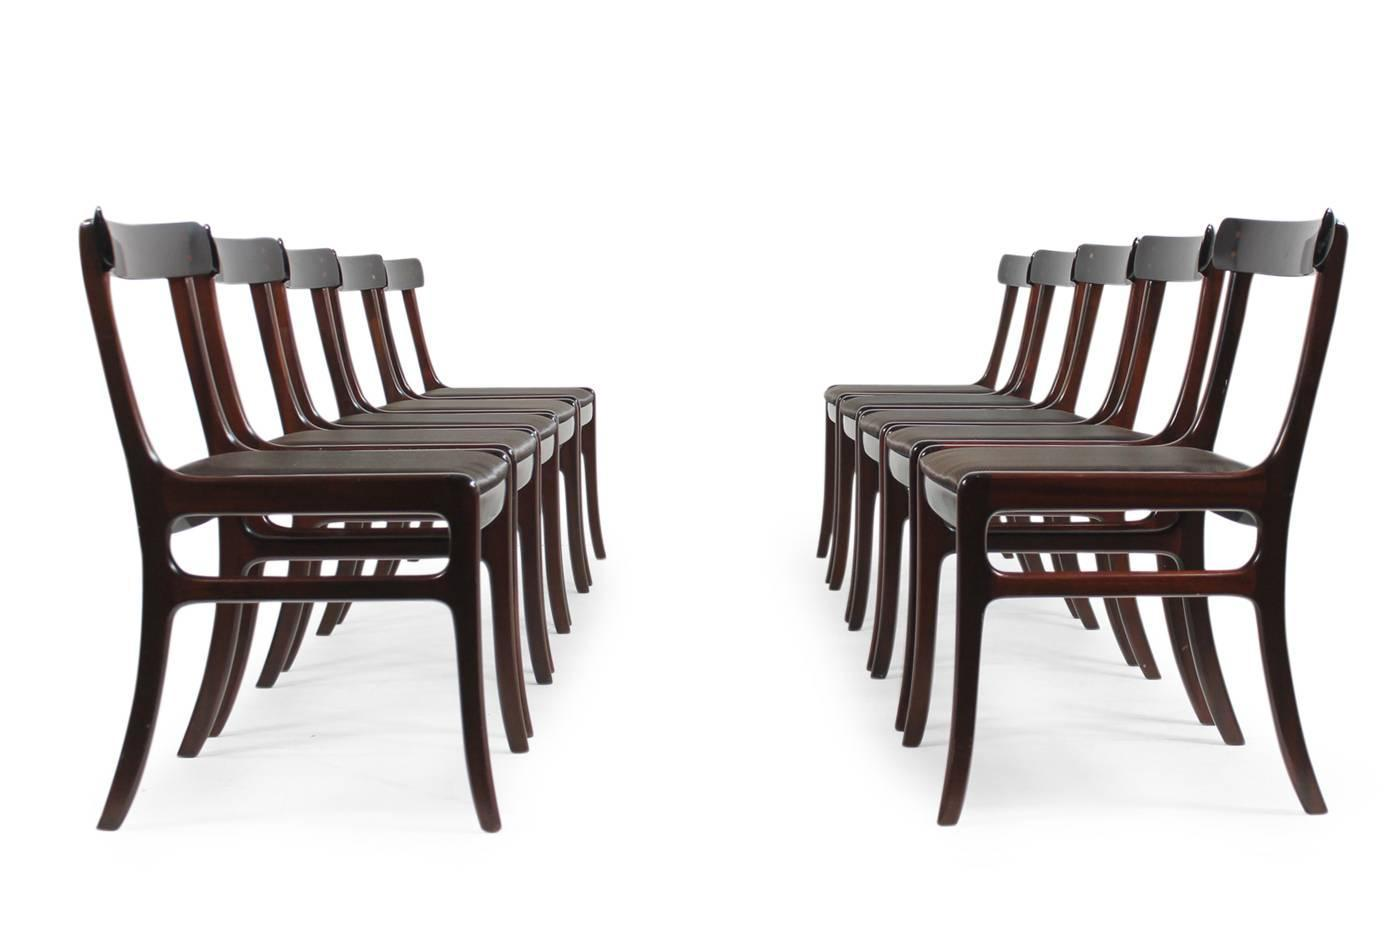 1960s Ole Wanscher PJ Dining Room Set Rungstedlund Table